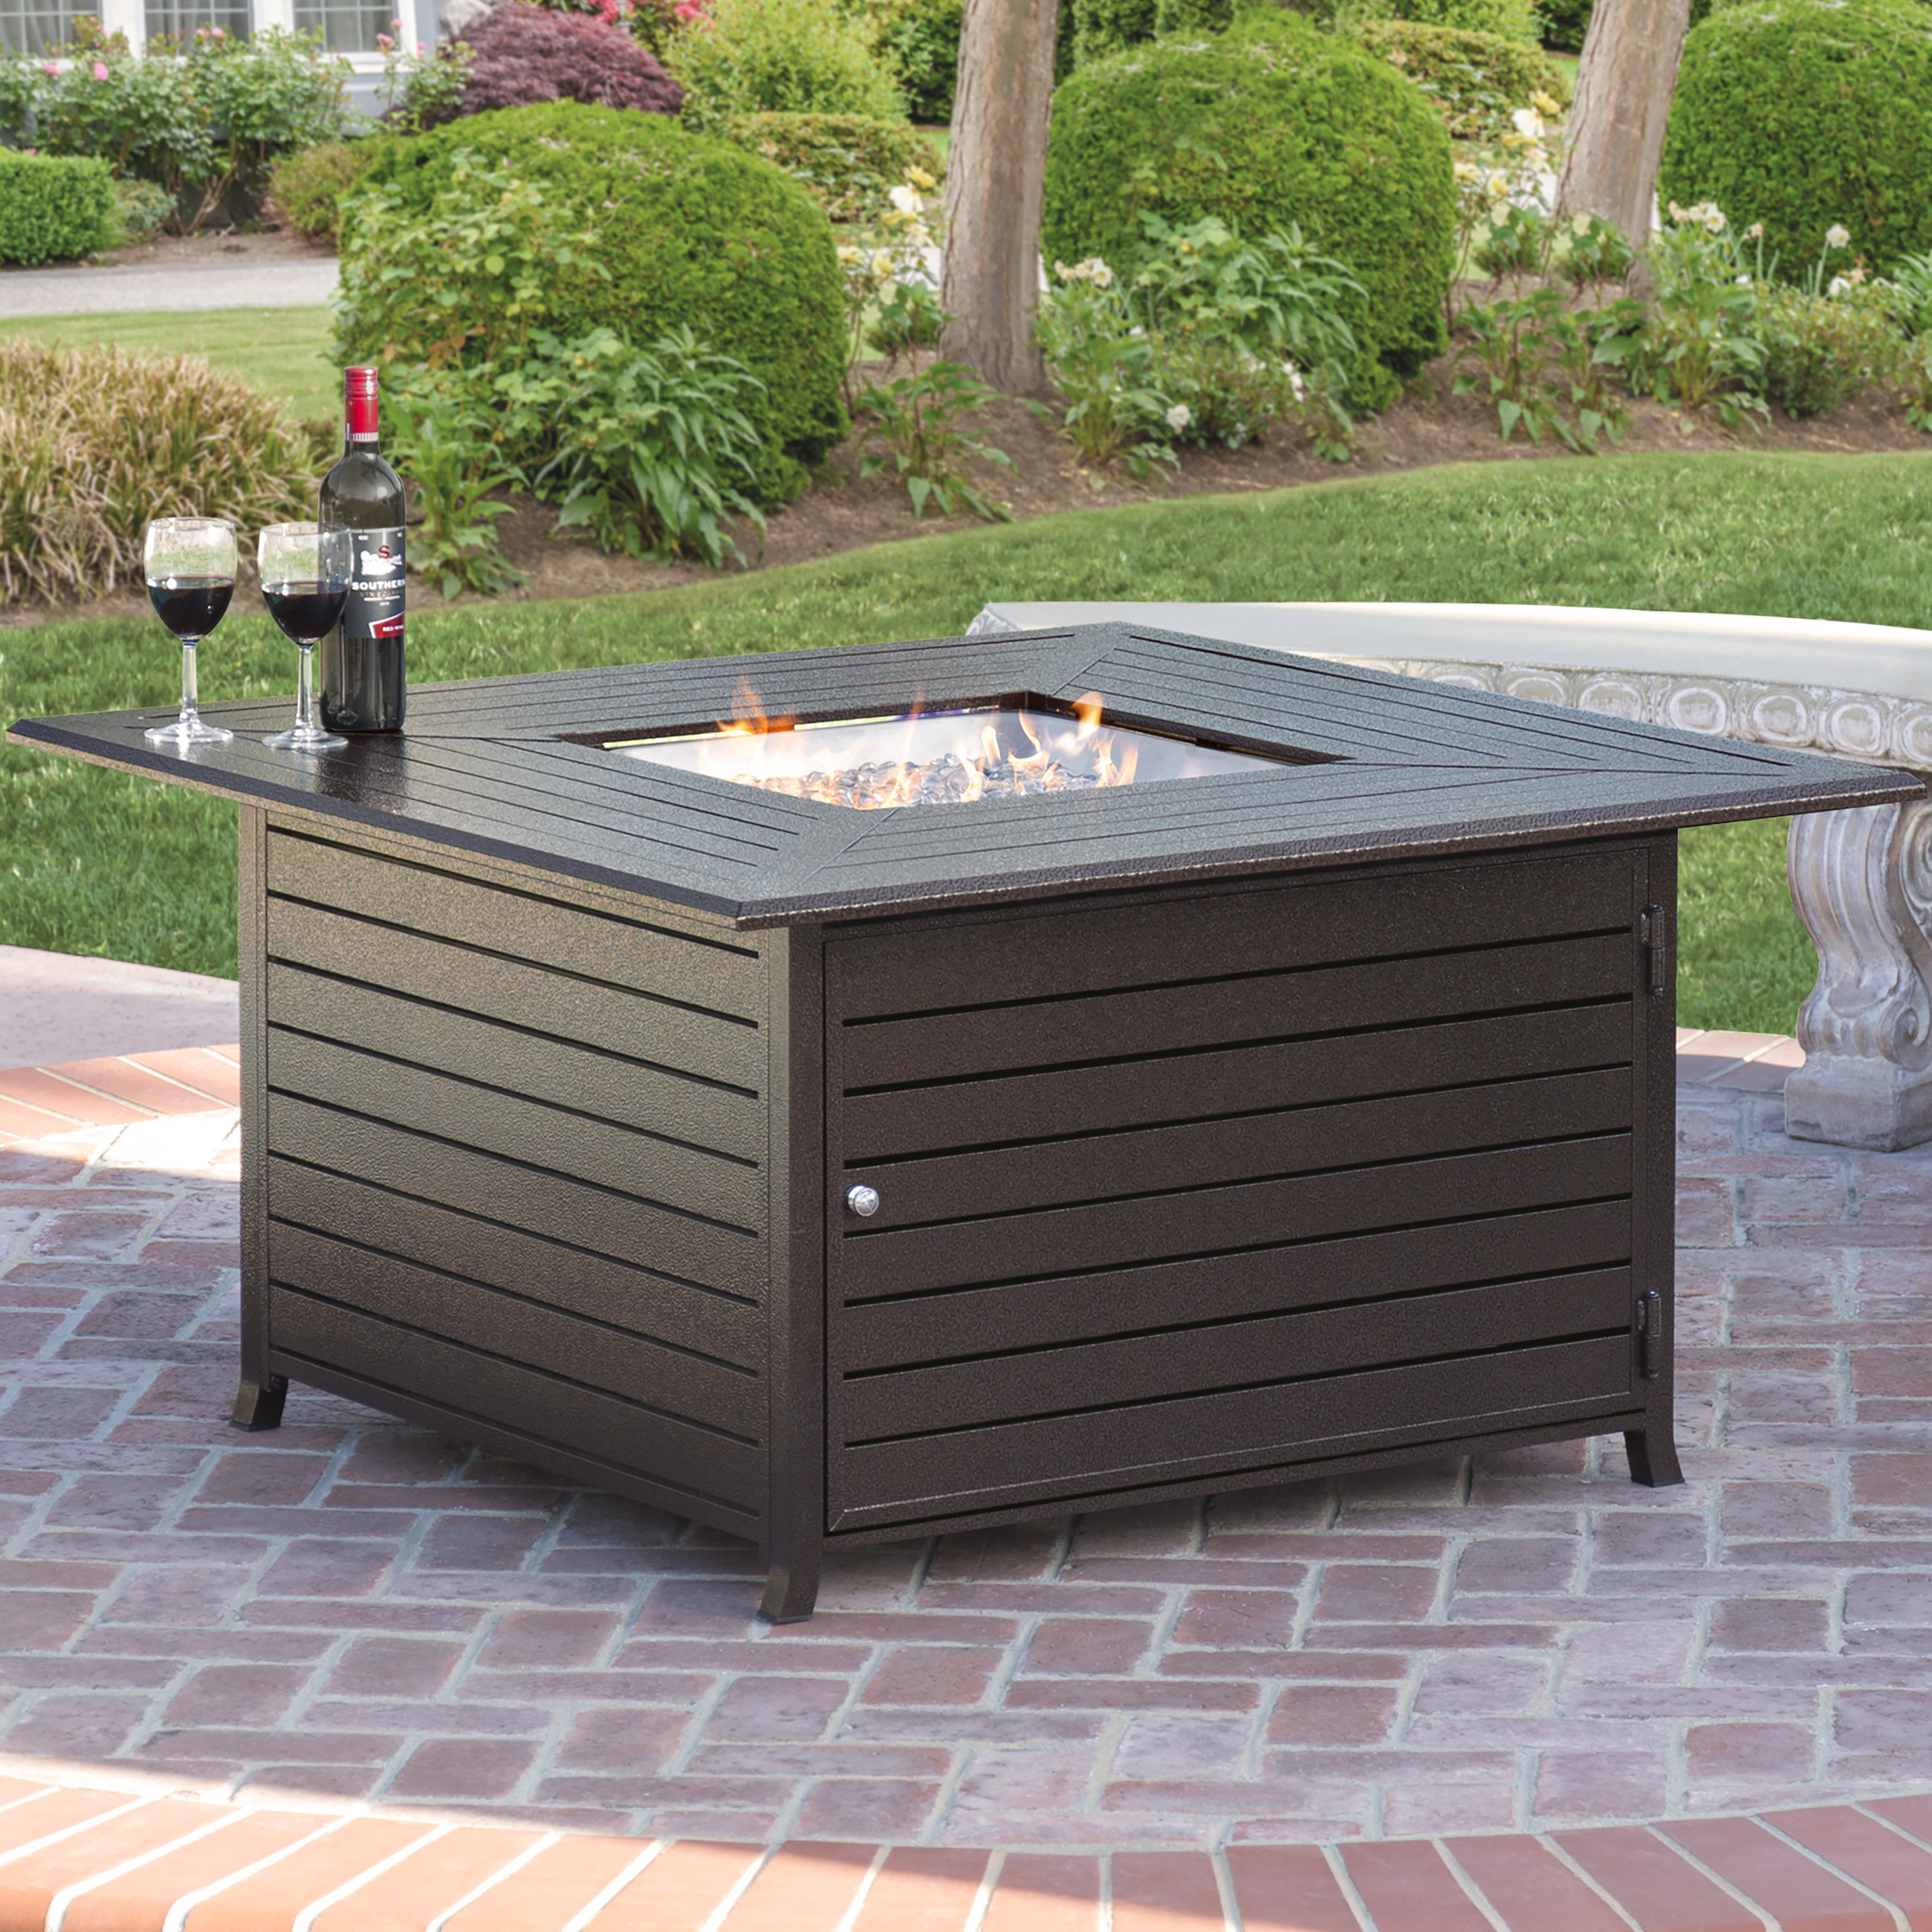 Best ideas about Outdoor Gas Fire Pits . Save or Pin Best Choice Products Extruded Aluminum Gas Outdoor Fire Now.